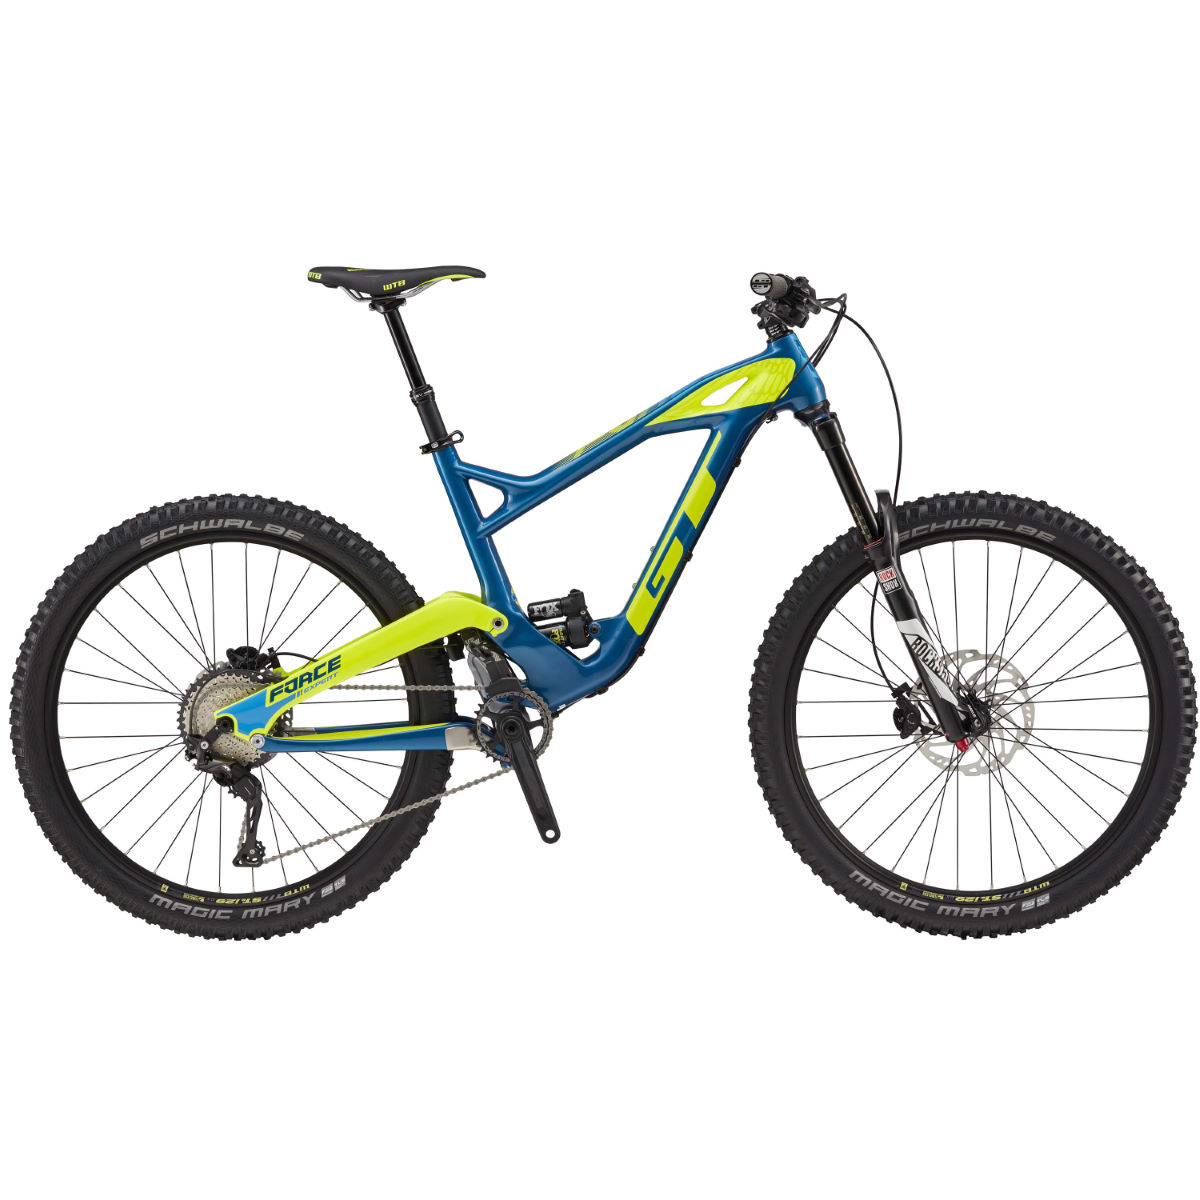 VTT GT Force Carbon Expert (2017) - XL Blue/Yellow VTT tout suspendu